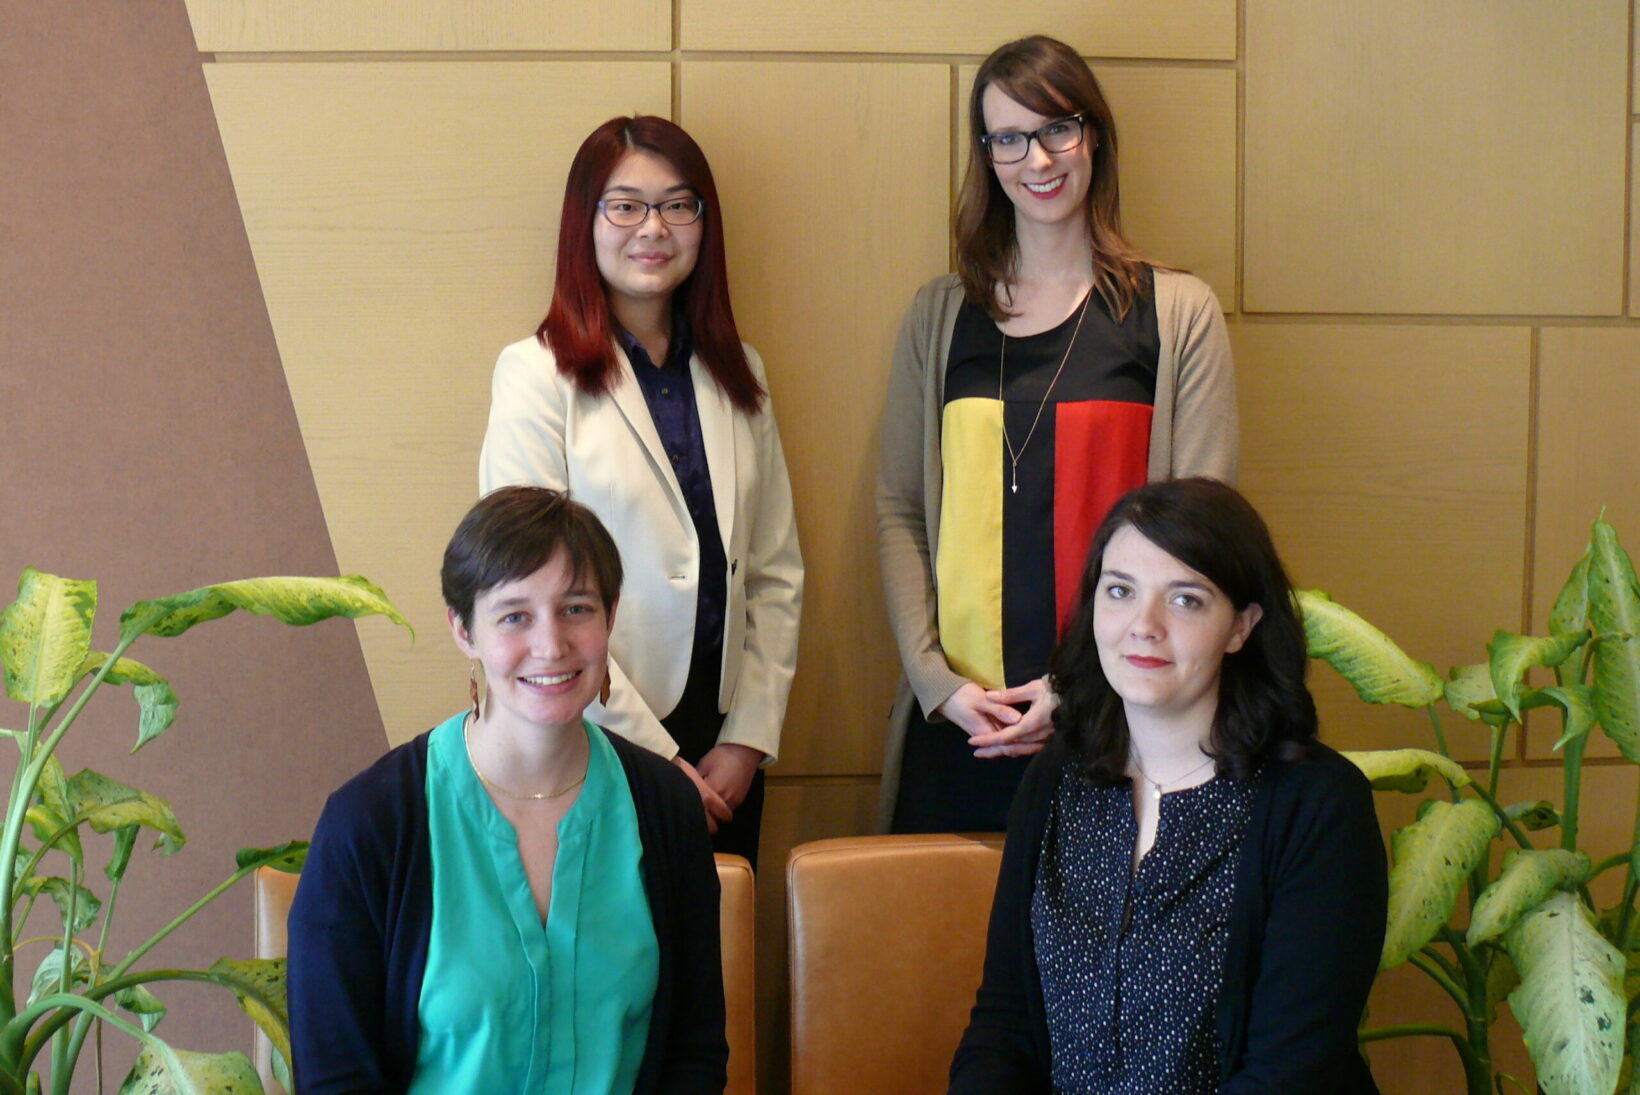 Bottom row (left to right): Charlotte Guillet, Rebecca Dorner; top row (left to right): Yan Jun Chen, Tracy Schaan.